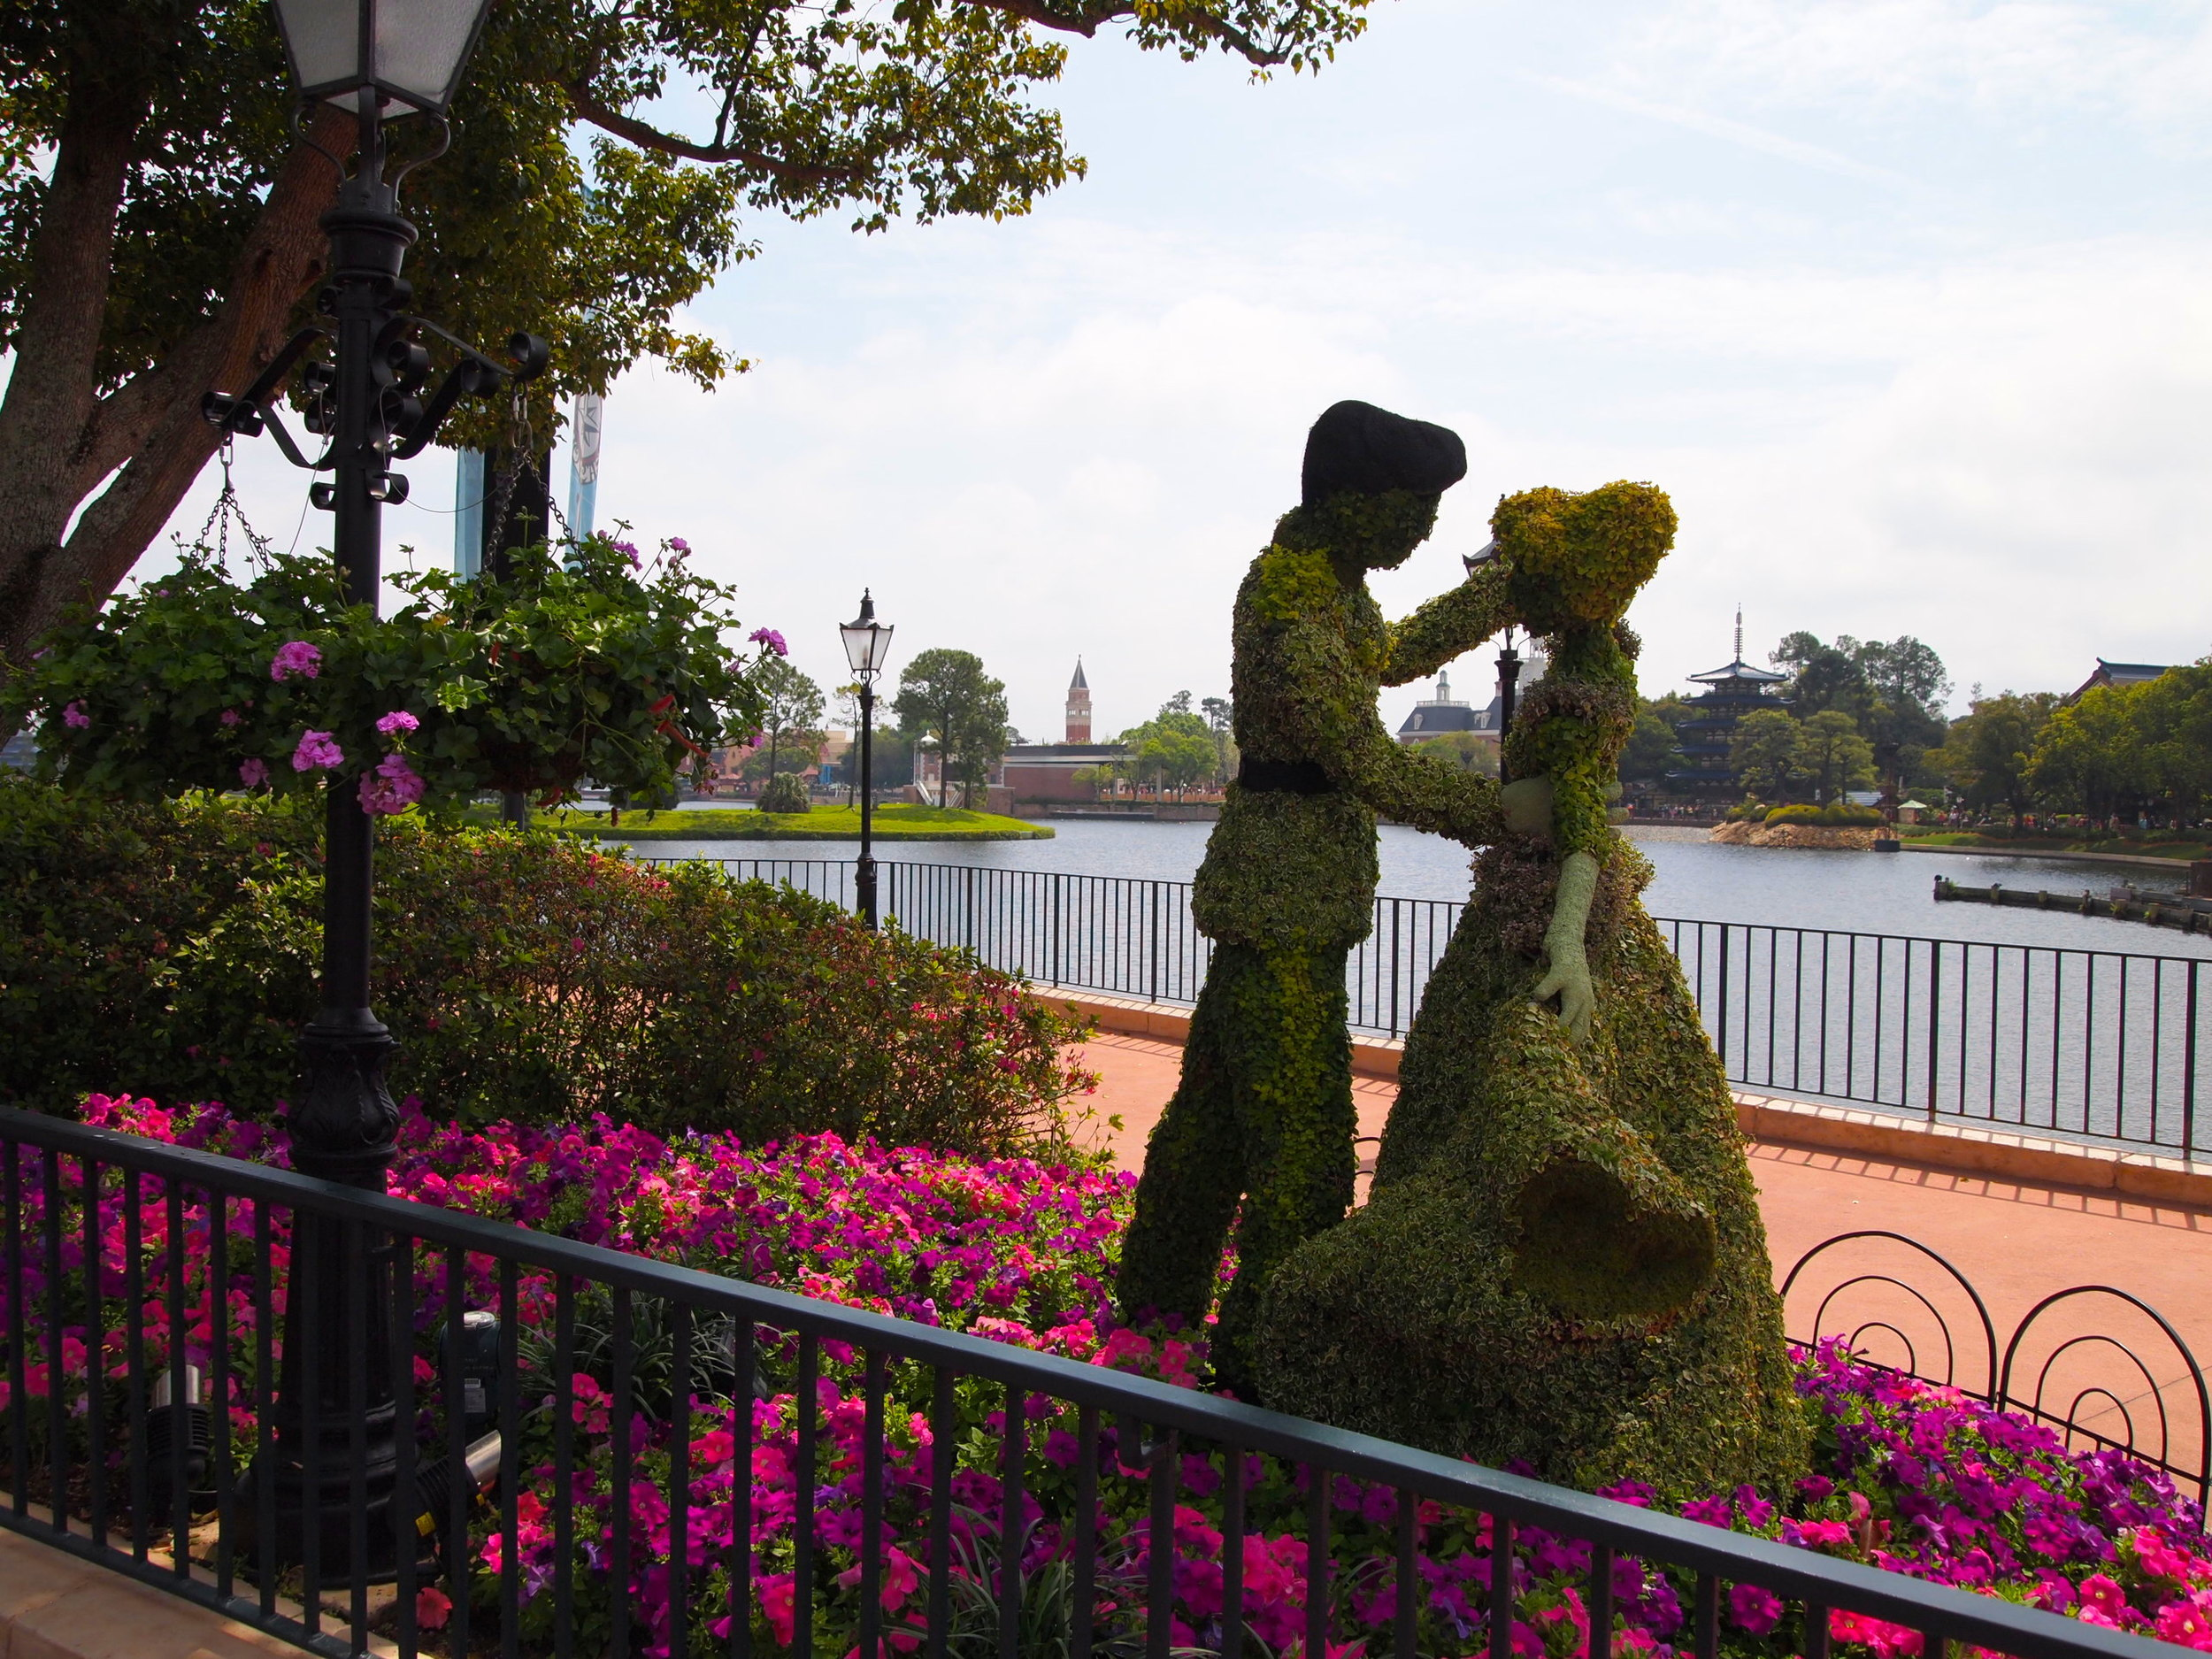 21st annual Epcot International Flower and Garden Festival